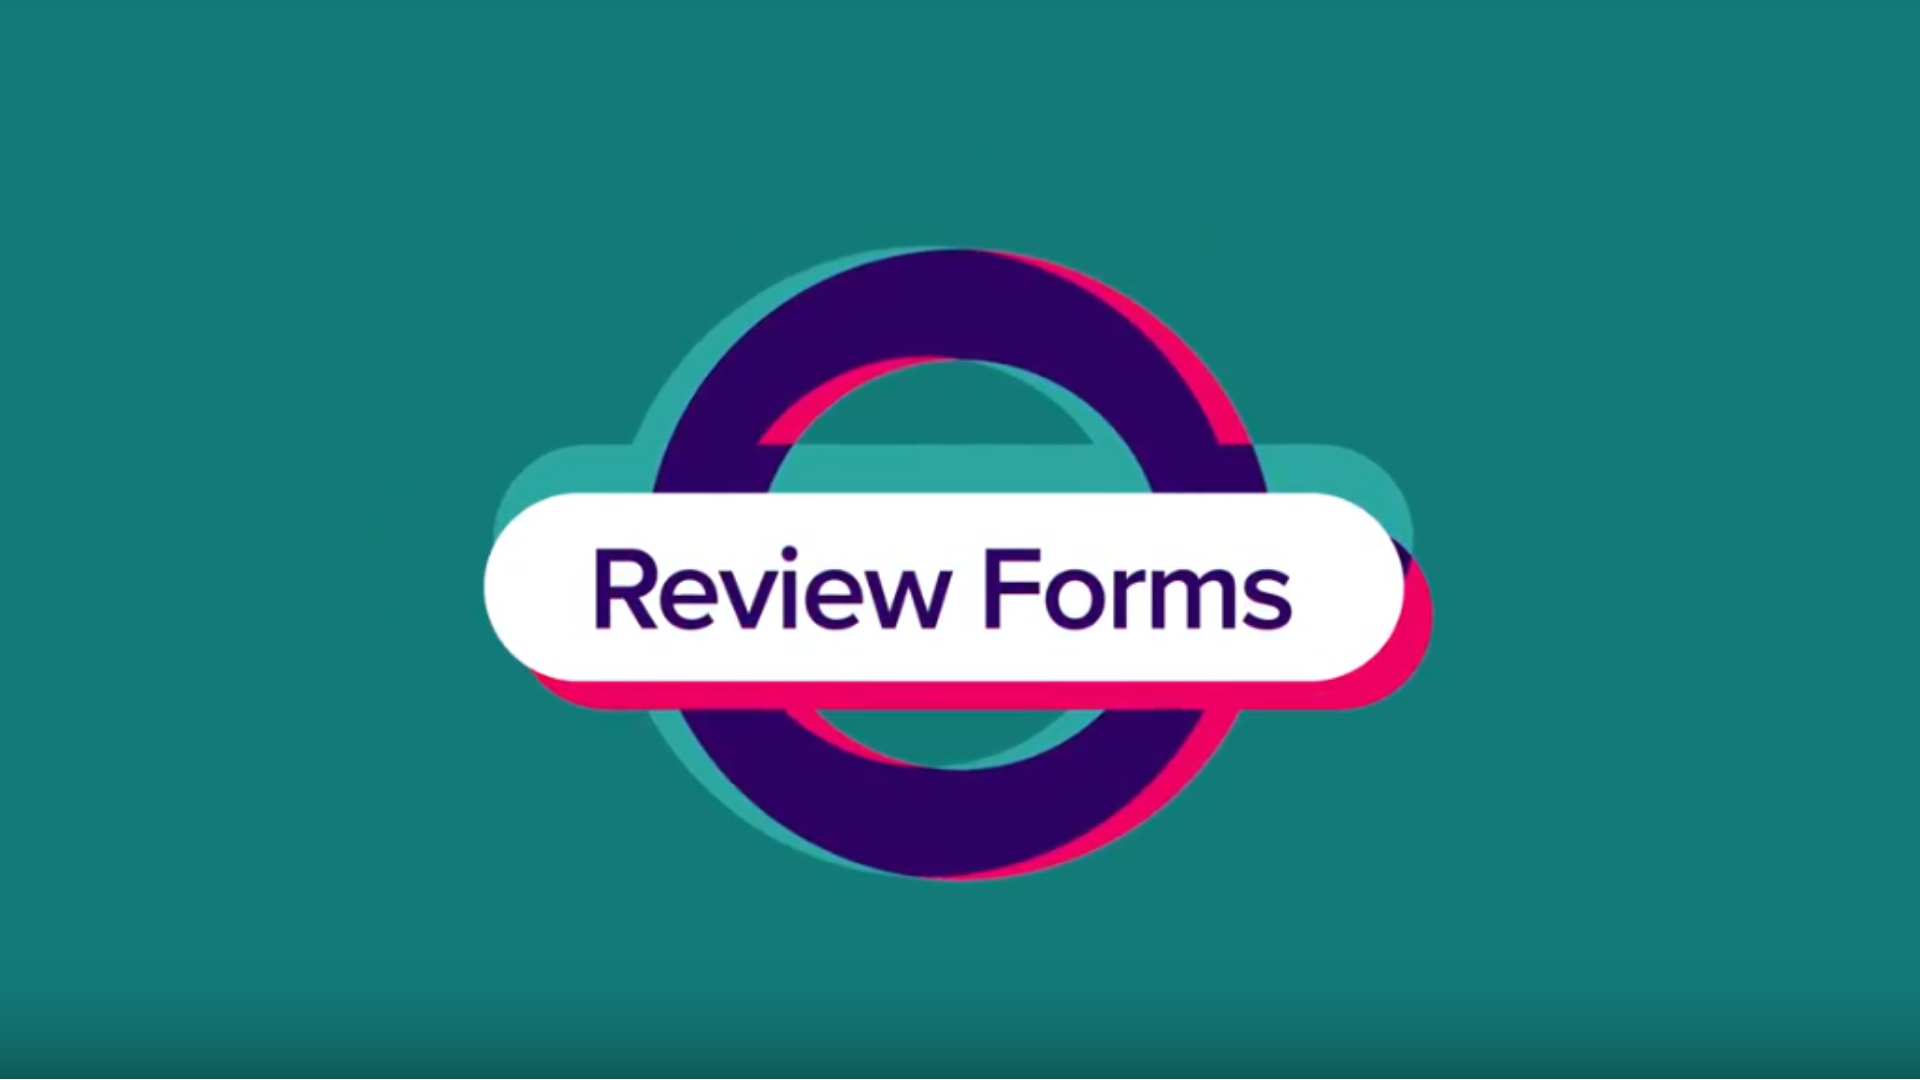 Learn About SmartSimple's Review Forms [VIDEO]